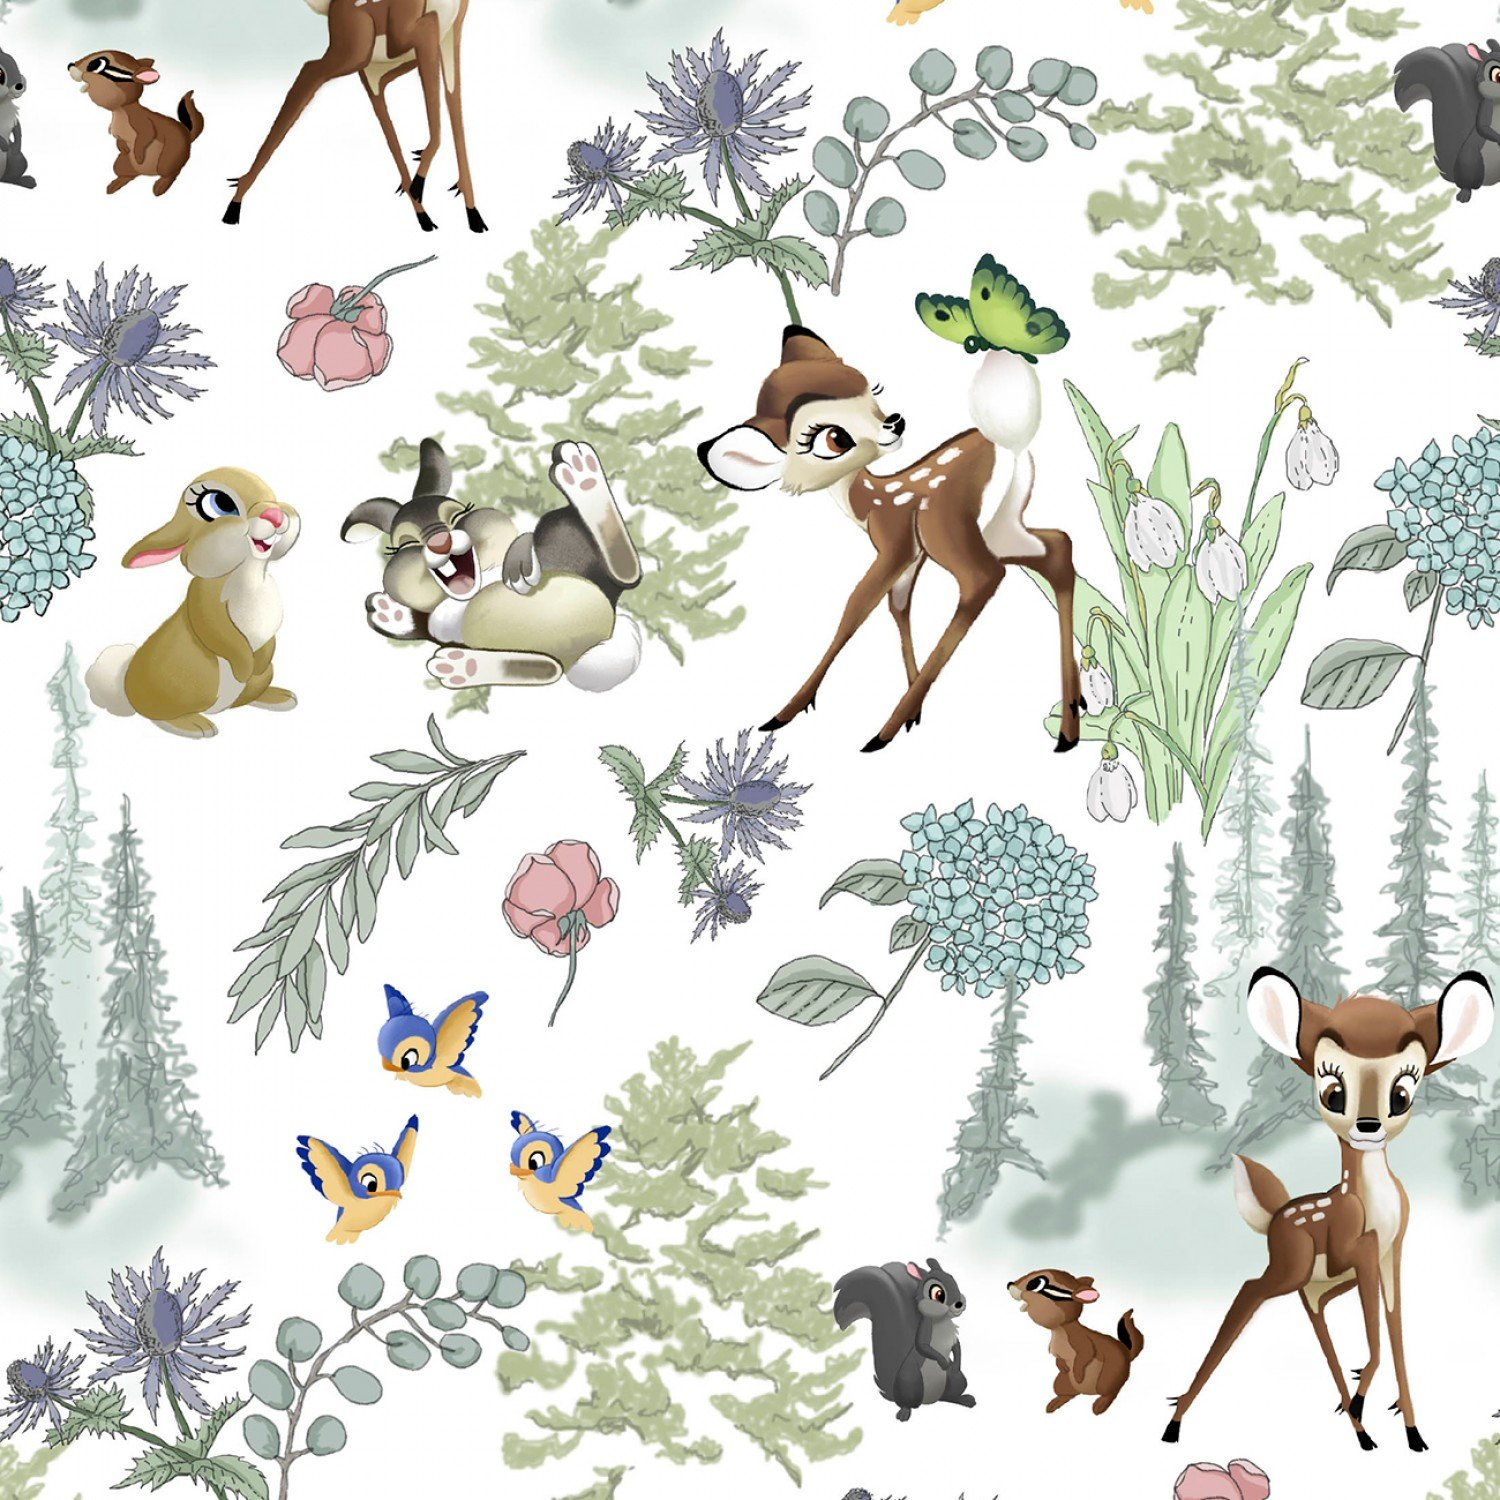 Bambi and Friends Children's Fabrics by Disney for Springs Creative